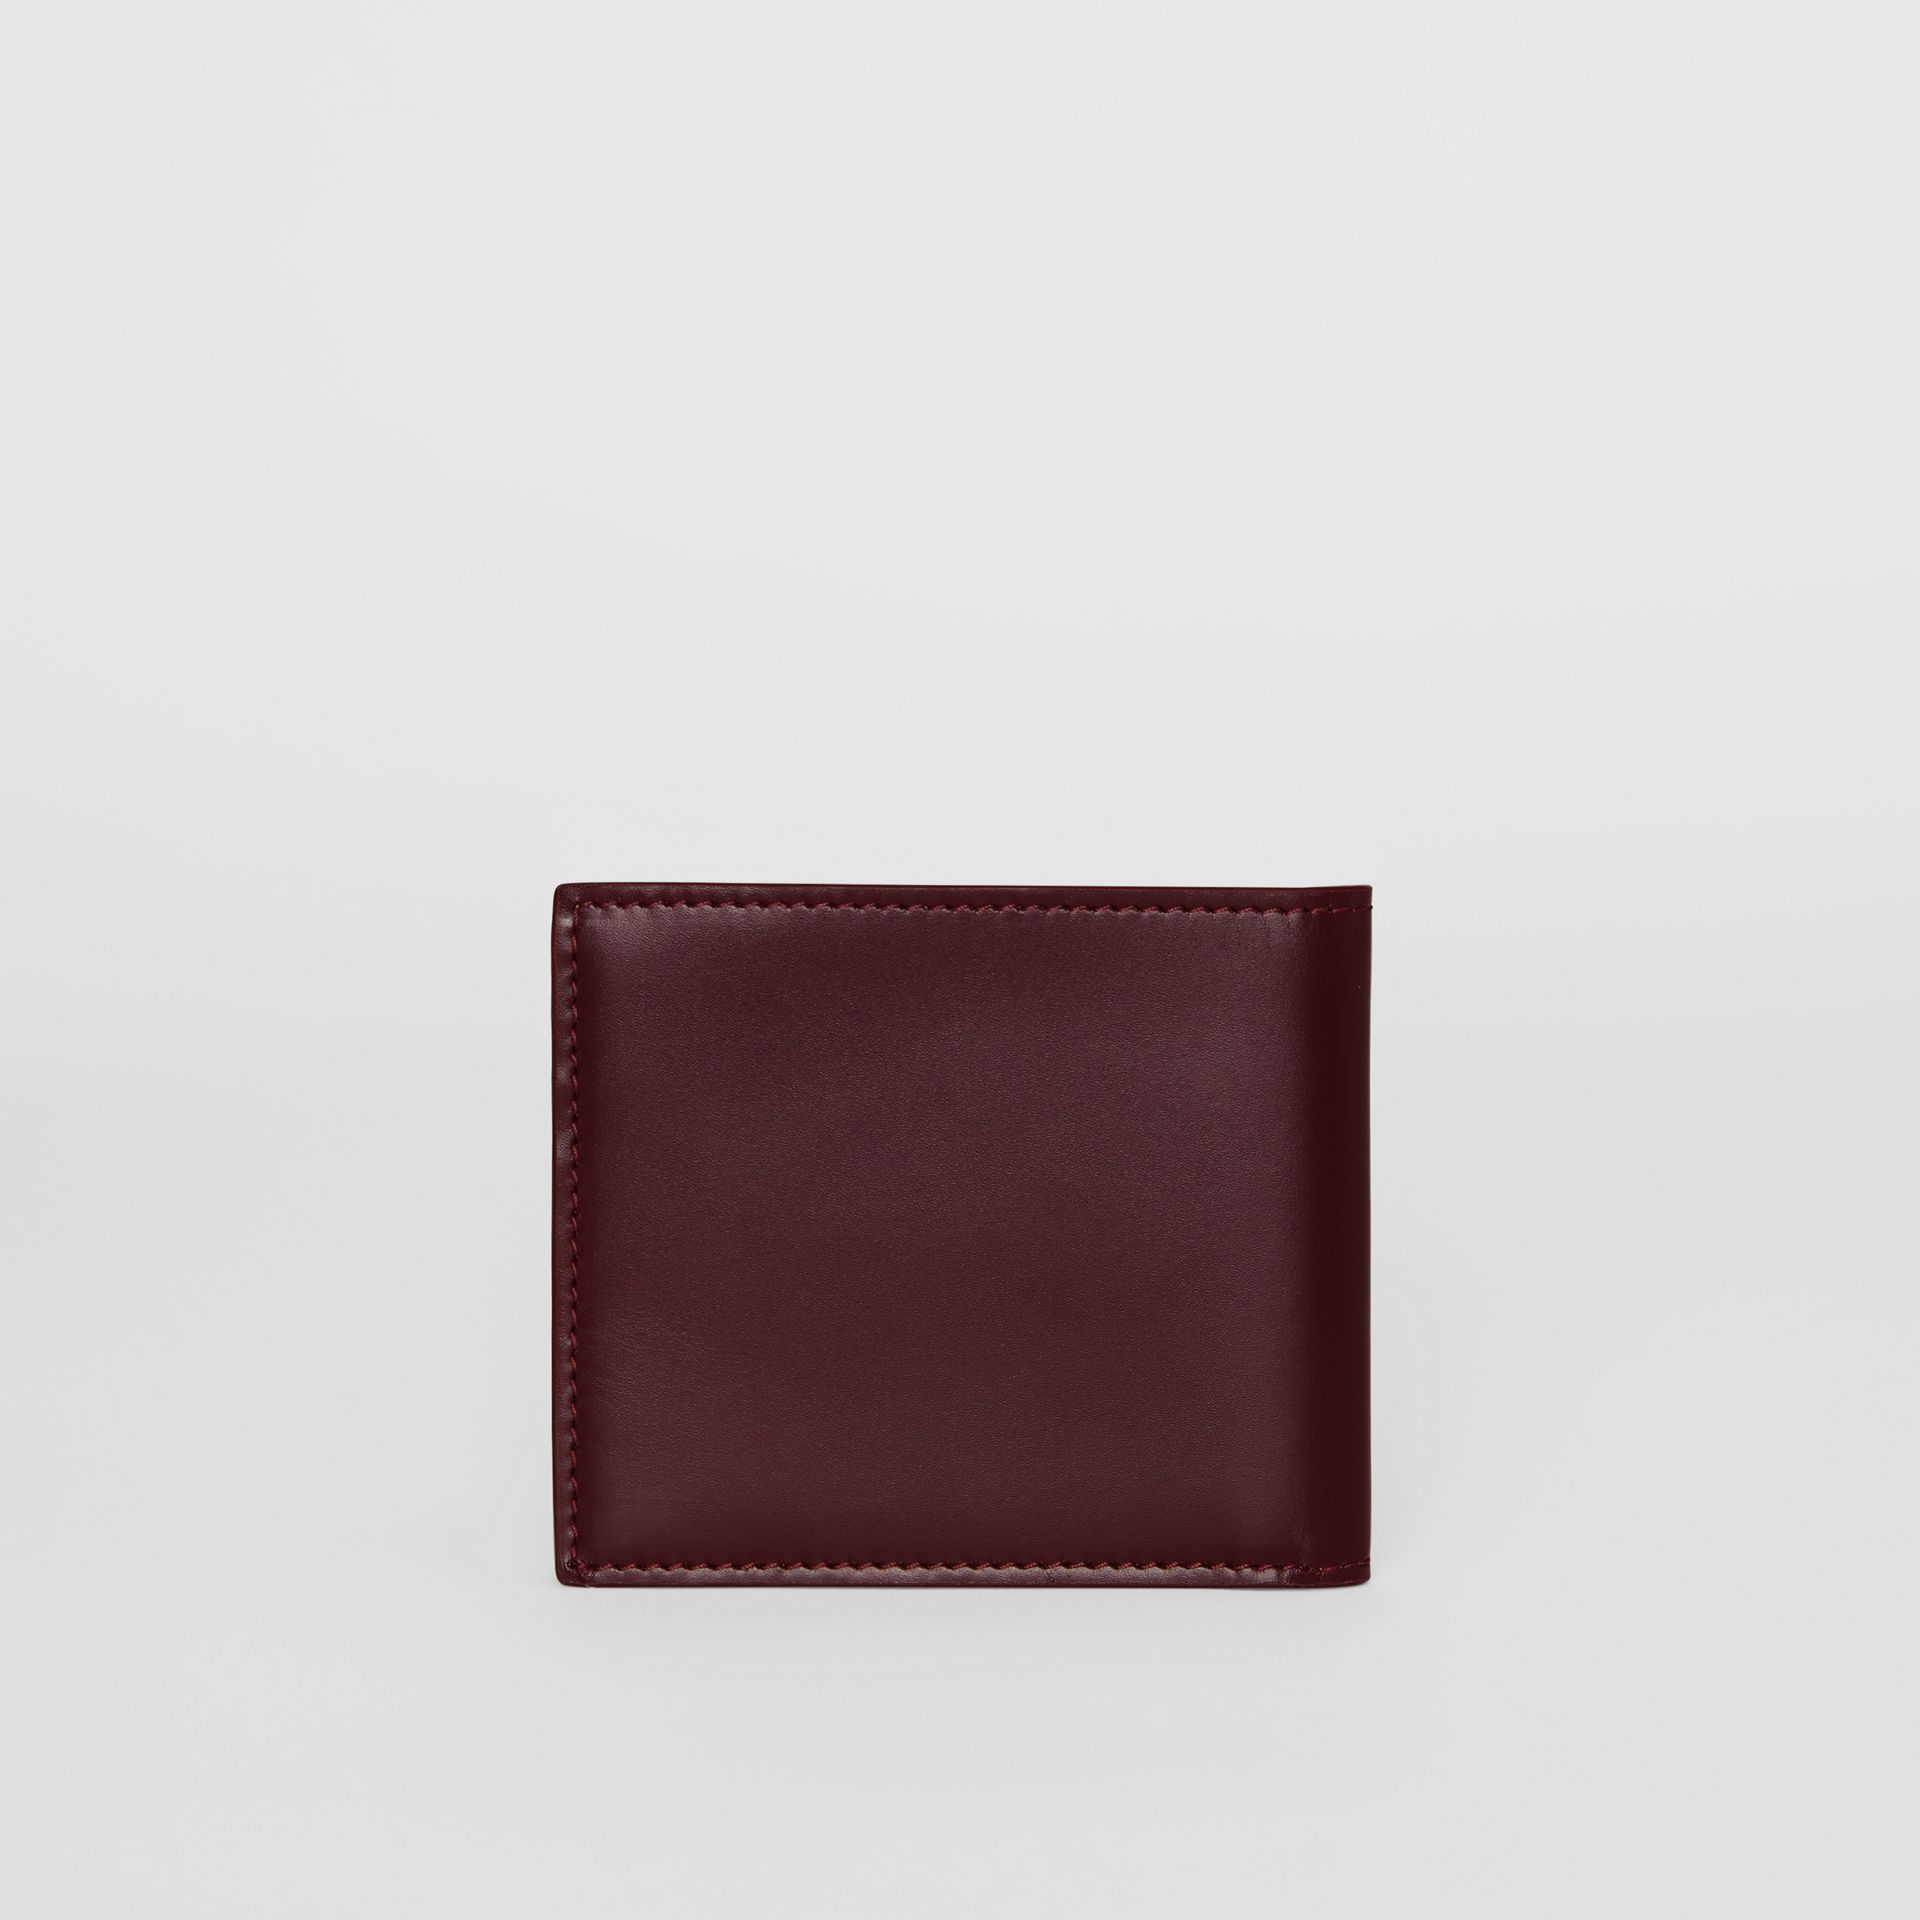 Monogram Motif Leather International Bifold Wallet in Oxblood - Men | Burberry Australia - gallery image 4